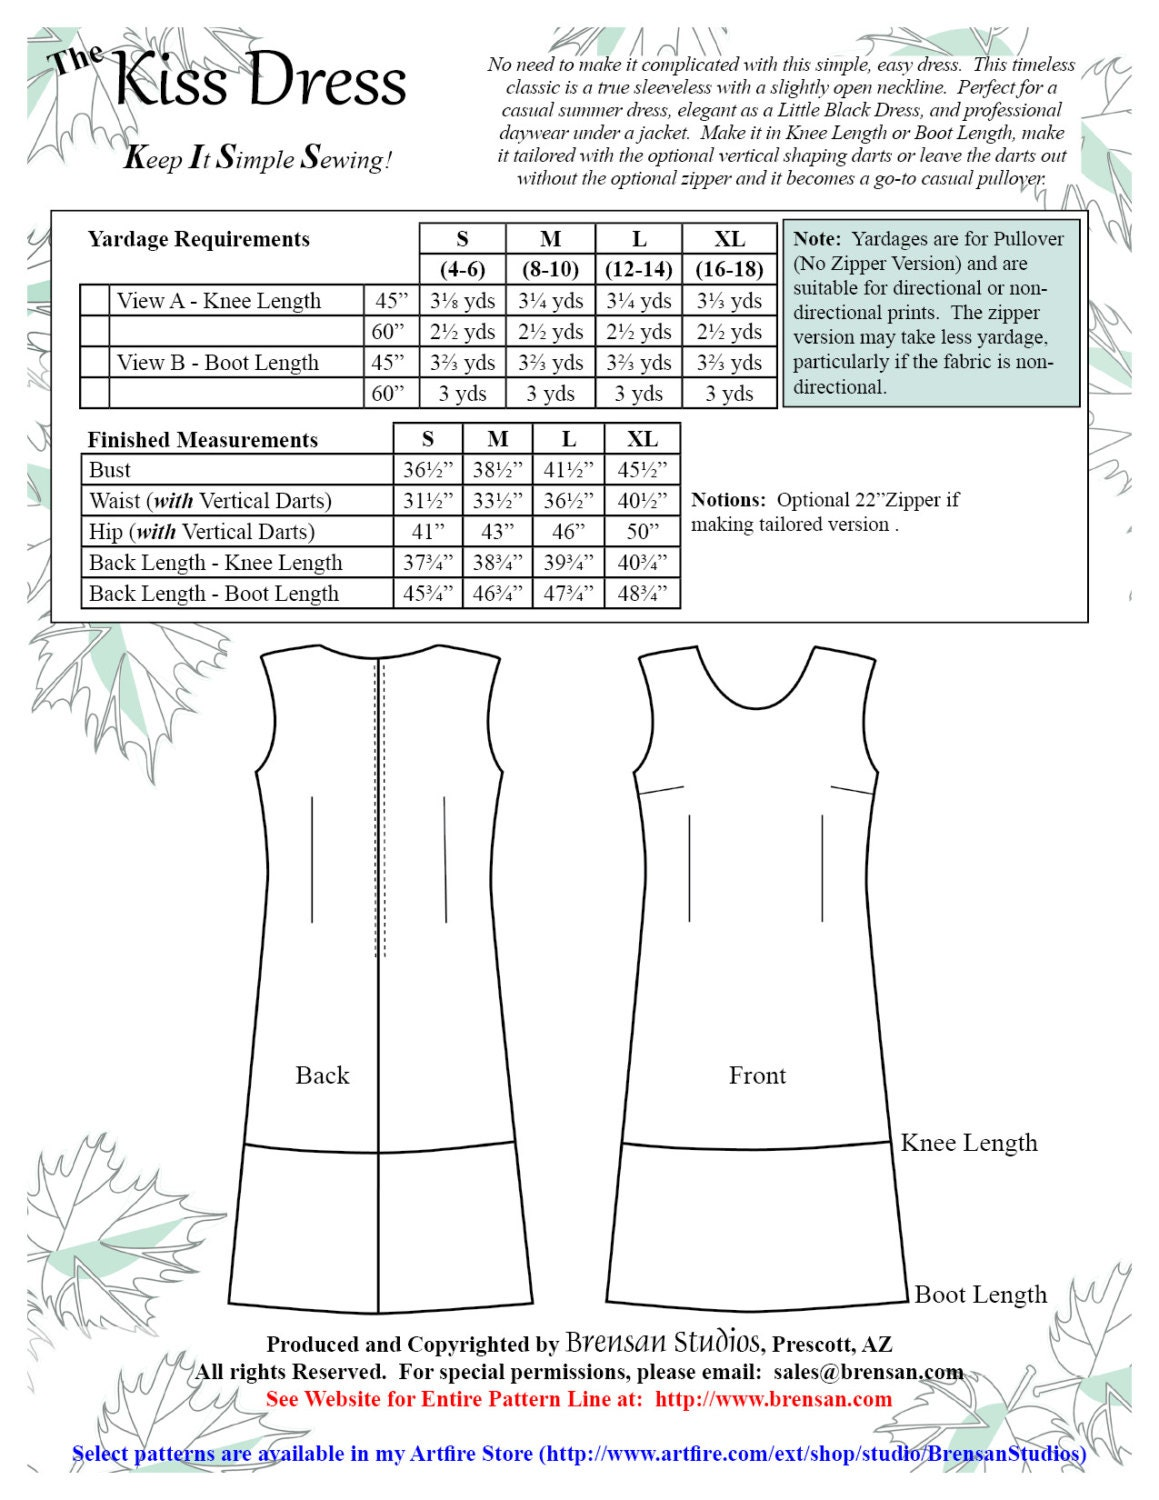 Kiss dress sewing pattern keep it simple sewing easy dress 1495 jeuxipadfo Image collections